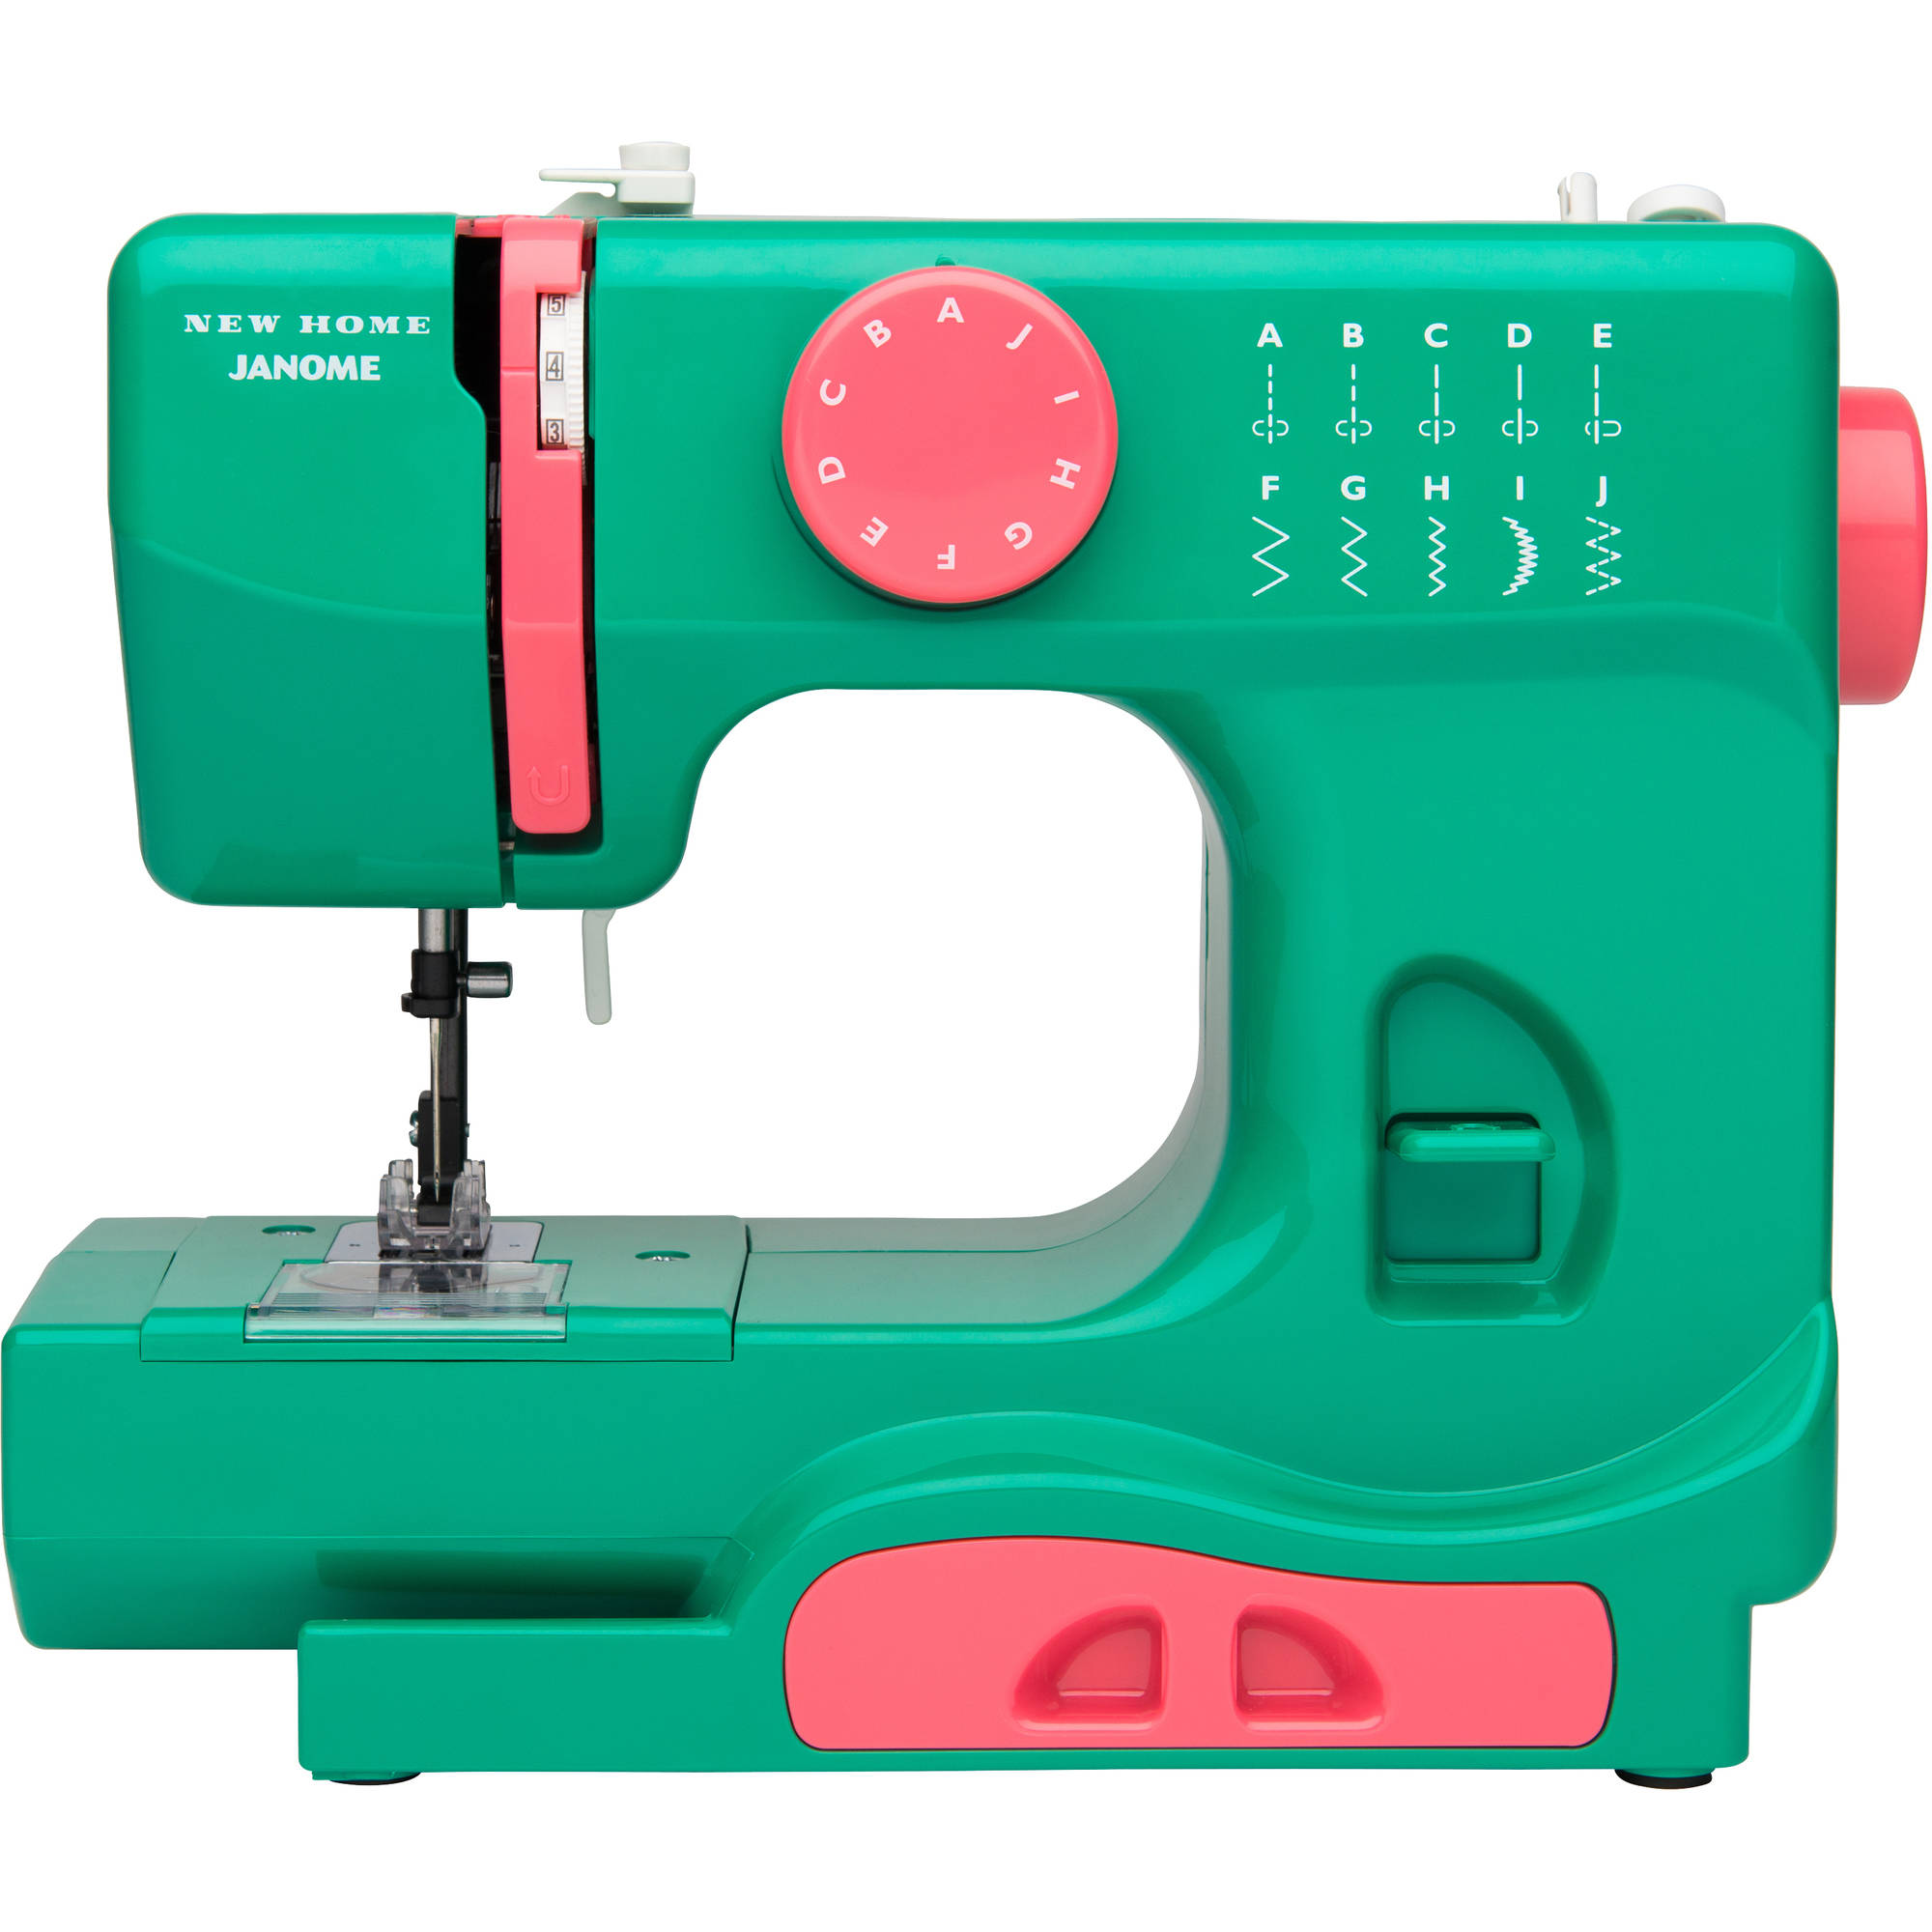 Janome Basic 10-Stitch Portable Sewing Machine